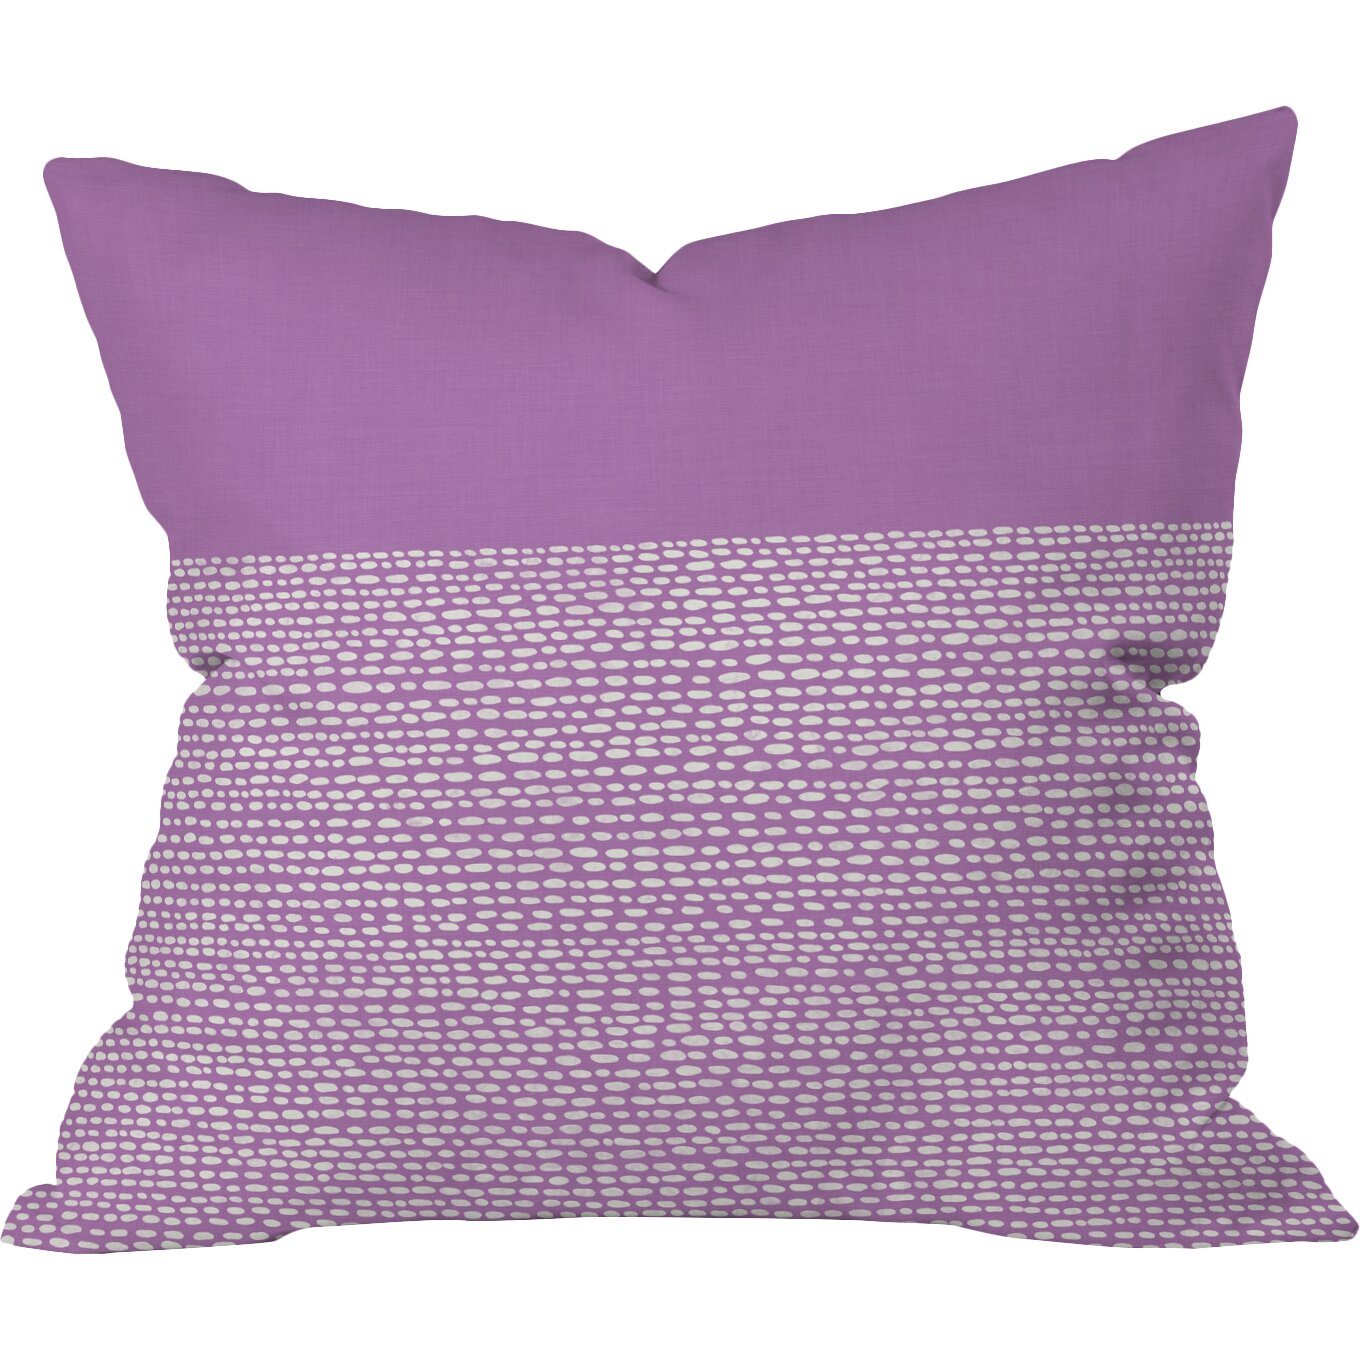 Throw Pillows In Abuja : Latitude Run Quahog Indoor/Outdoor Throw Pillow Wayfair